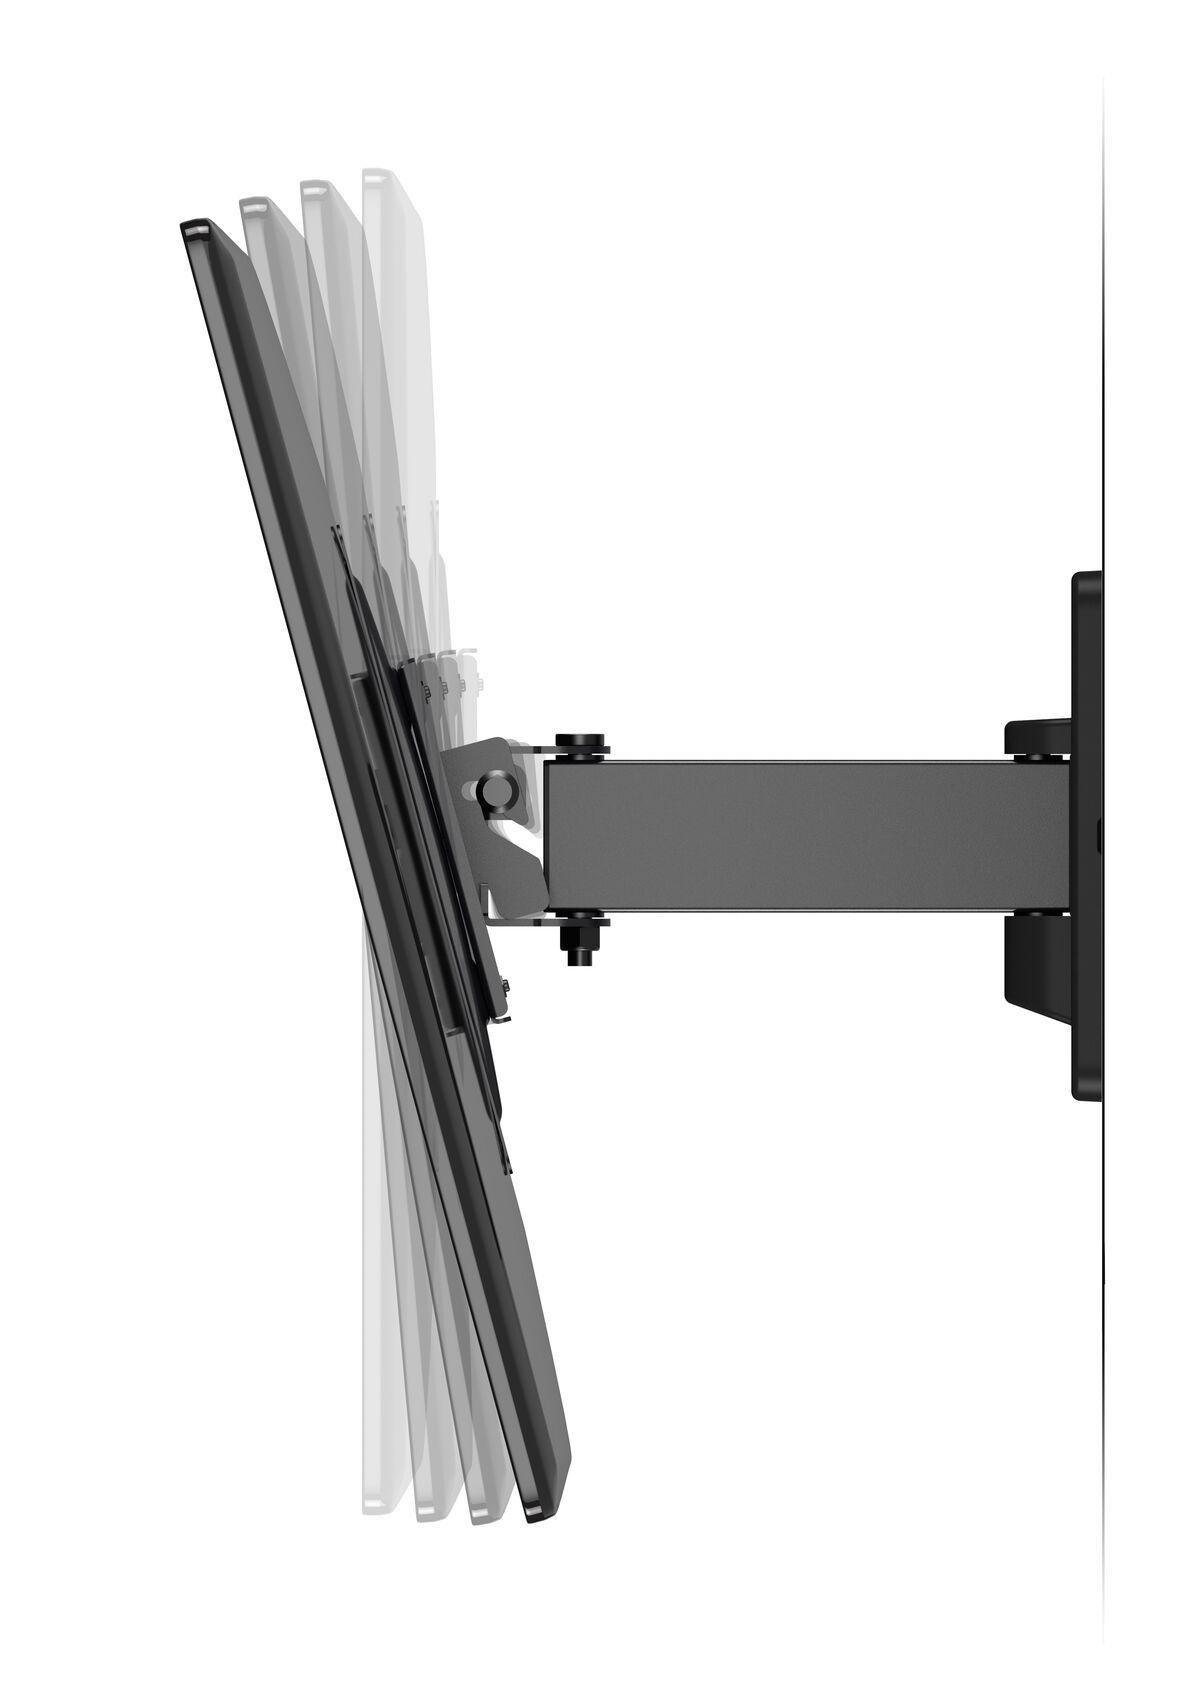 Vogel's MA 2030 (A1) Full-Motion TV Wall Mount - Suitable for 19 up to 40 inch TVs - Motion (up to 120°) - Tilt up to 15° - Side view